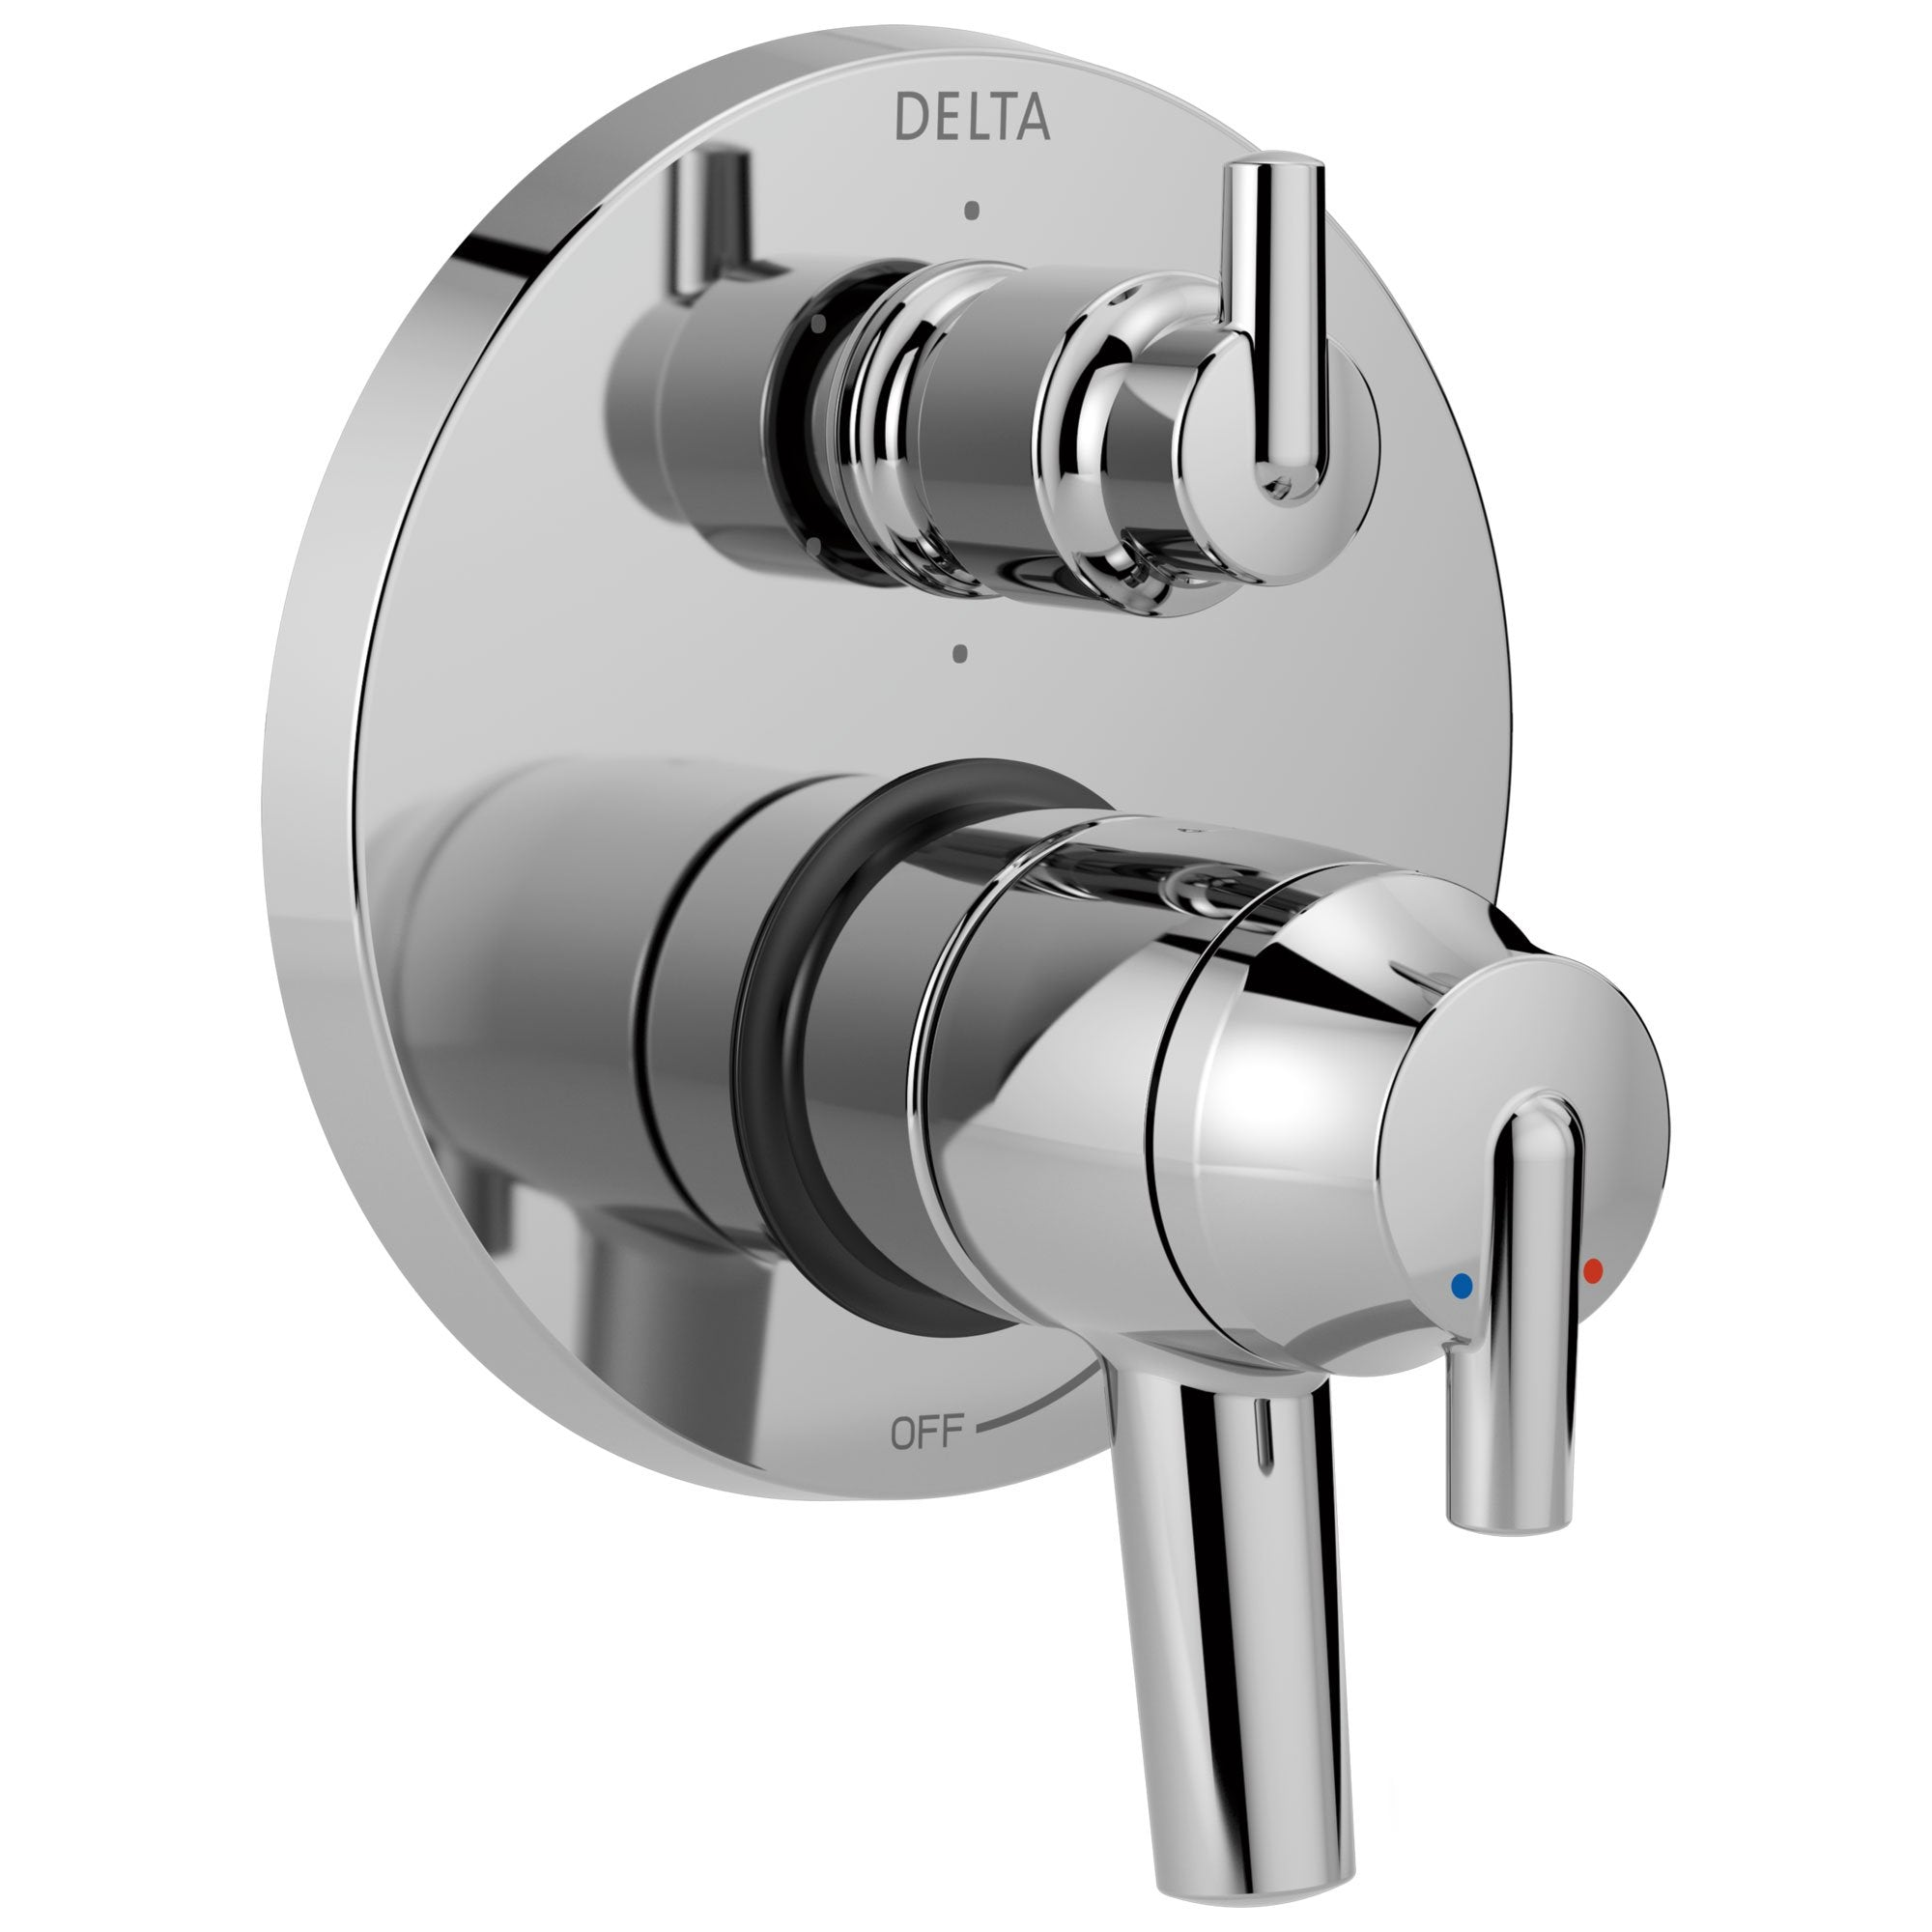 Delta Trinsic Chrome Contemporary Monitor 17 Shower Faucet Control Handle with 6-Setting Integrated Diverter Includes Trim Kit and Valve without Stops D2158V